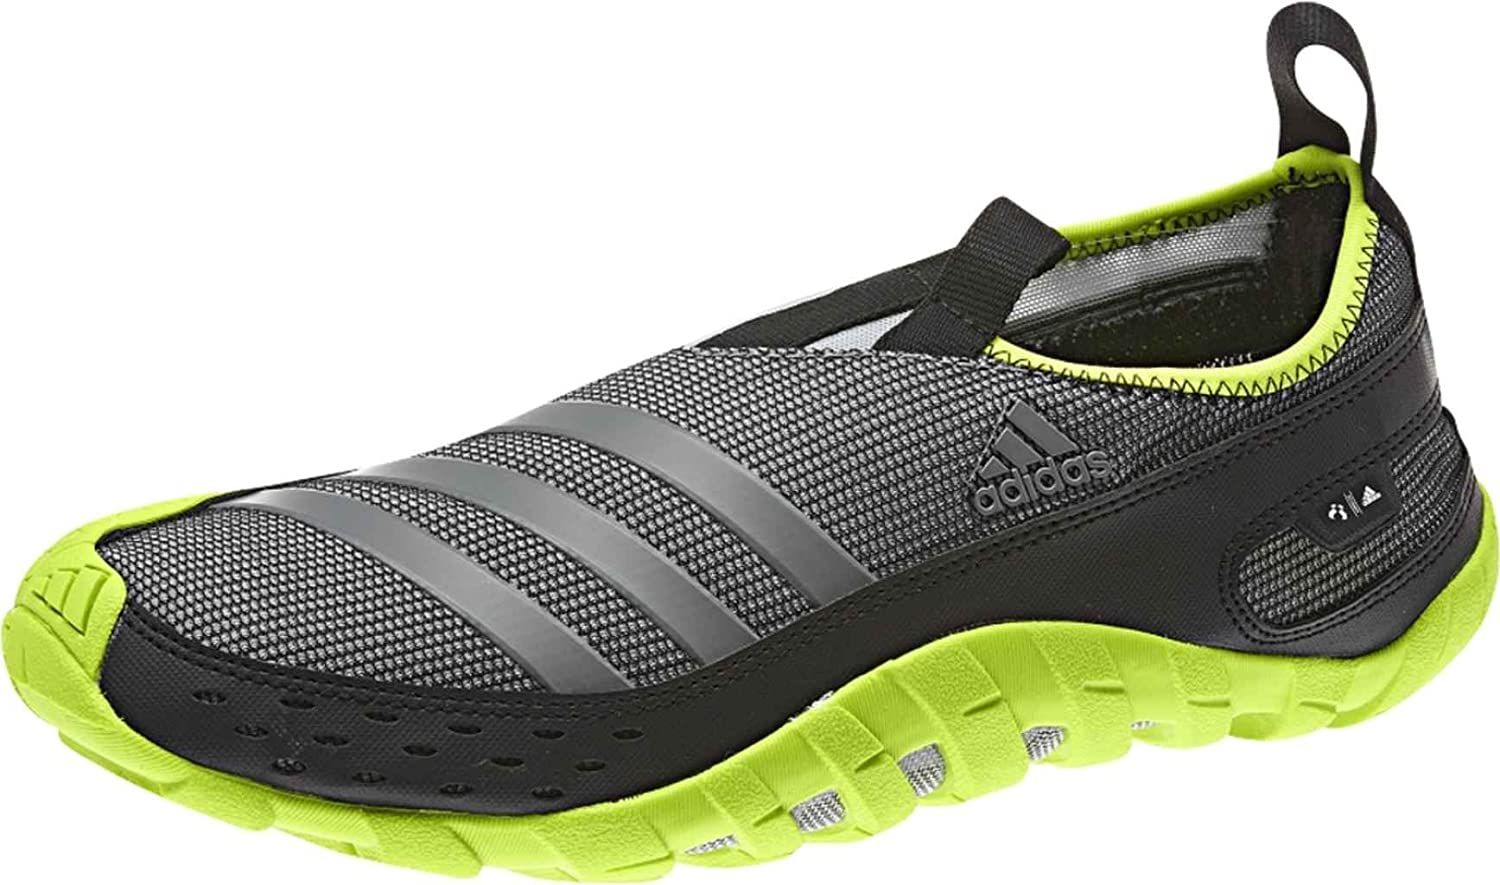 c2e829d635f adidas Jawpaw 2 Water Shoe - Mid Grey Mid Grey Solar Slime - Mens - 10